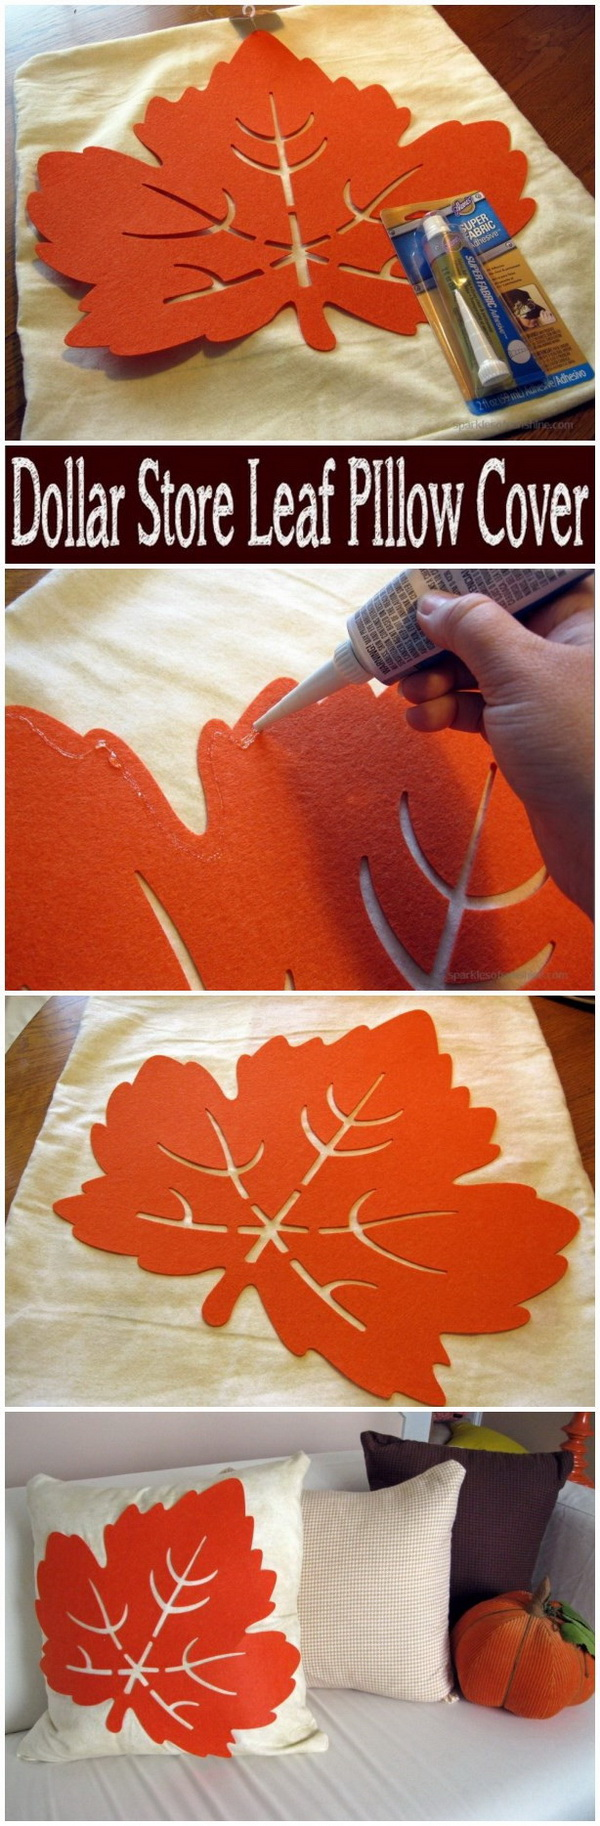 Dollar Store Leaf Pillow Cover. Bring your living room into the fall season by making this cheerful leaf throw pillow.